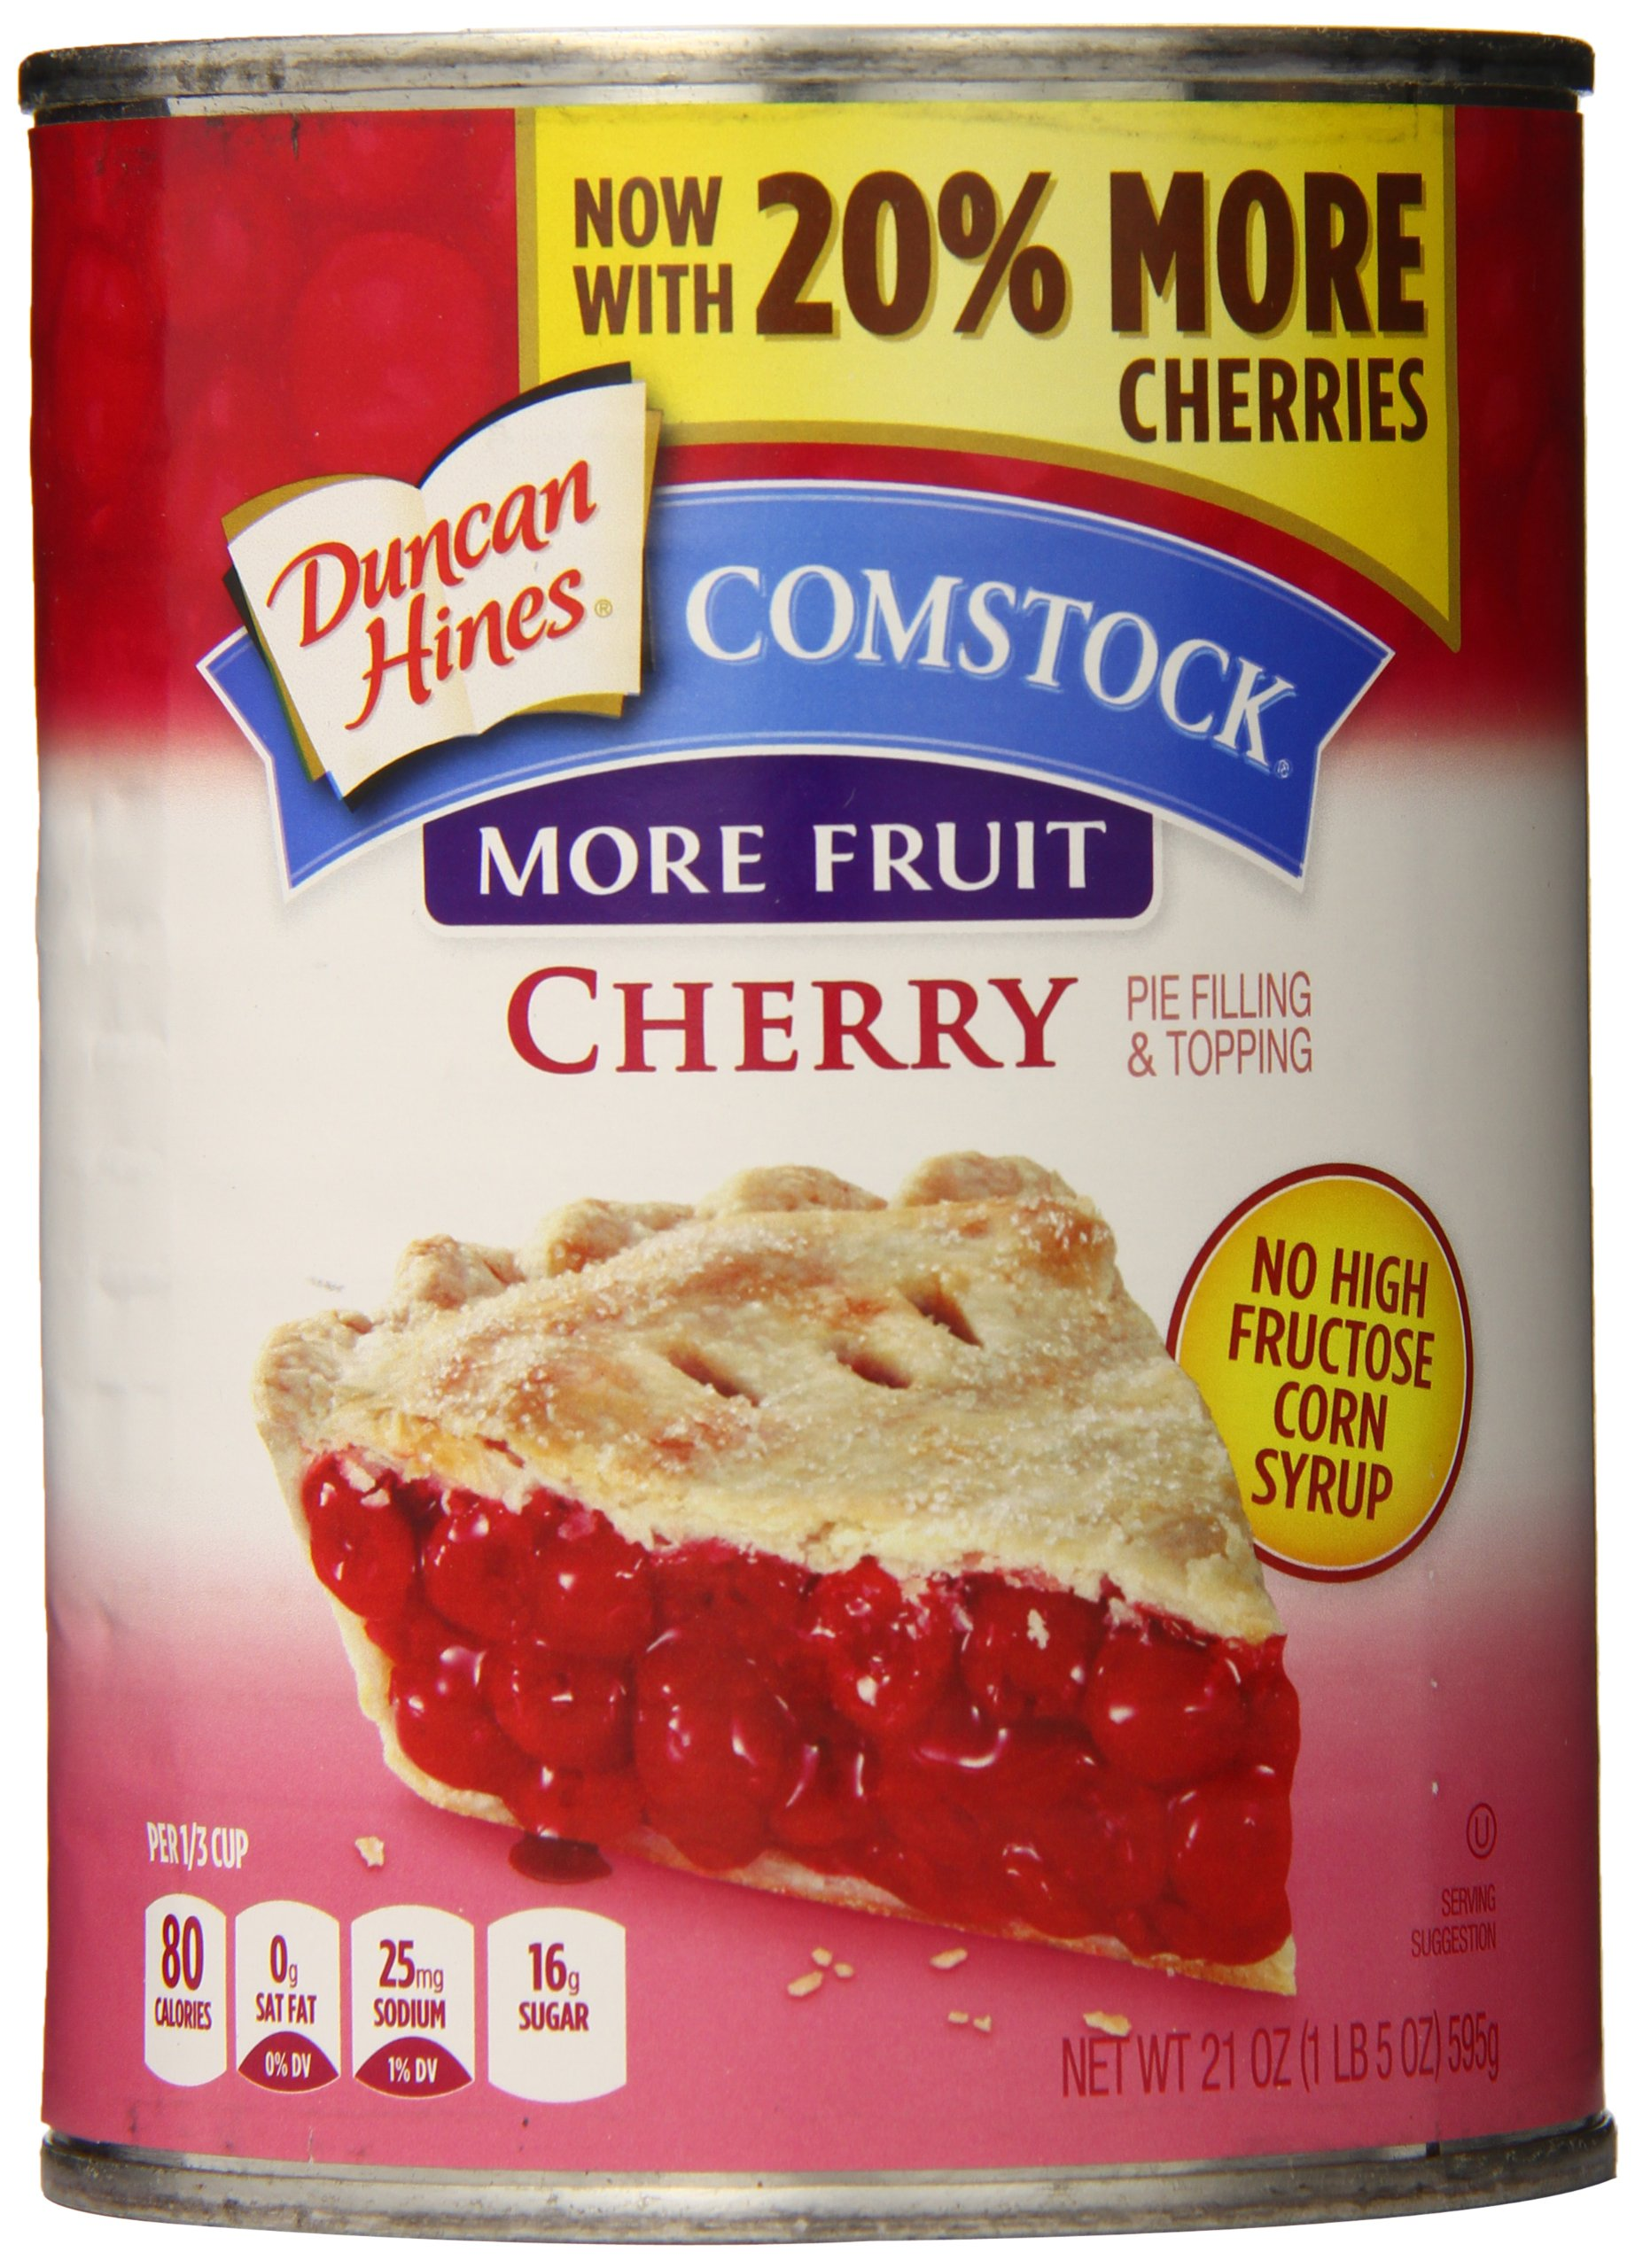 Comstock More Fruit Cherry Pie Filling and Topping, 21-Ounce (Pack of 4)